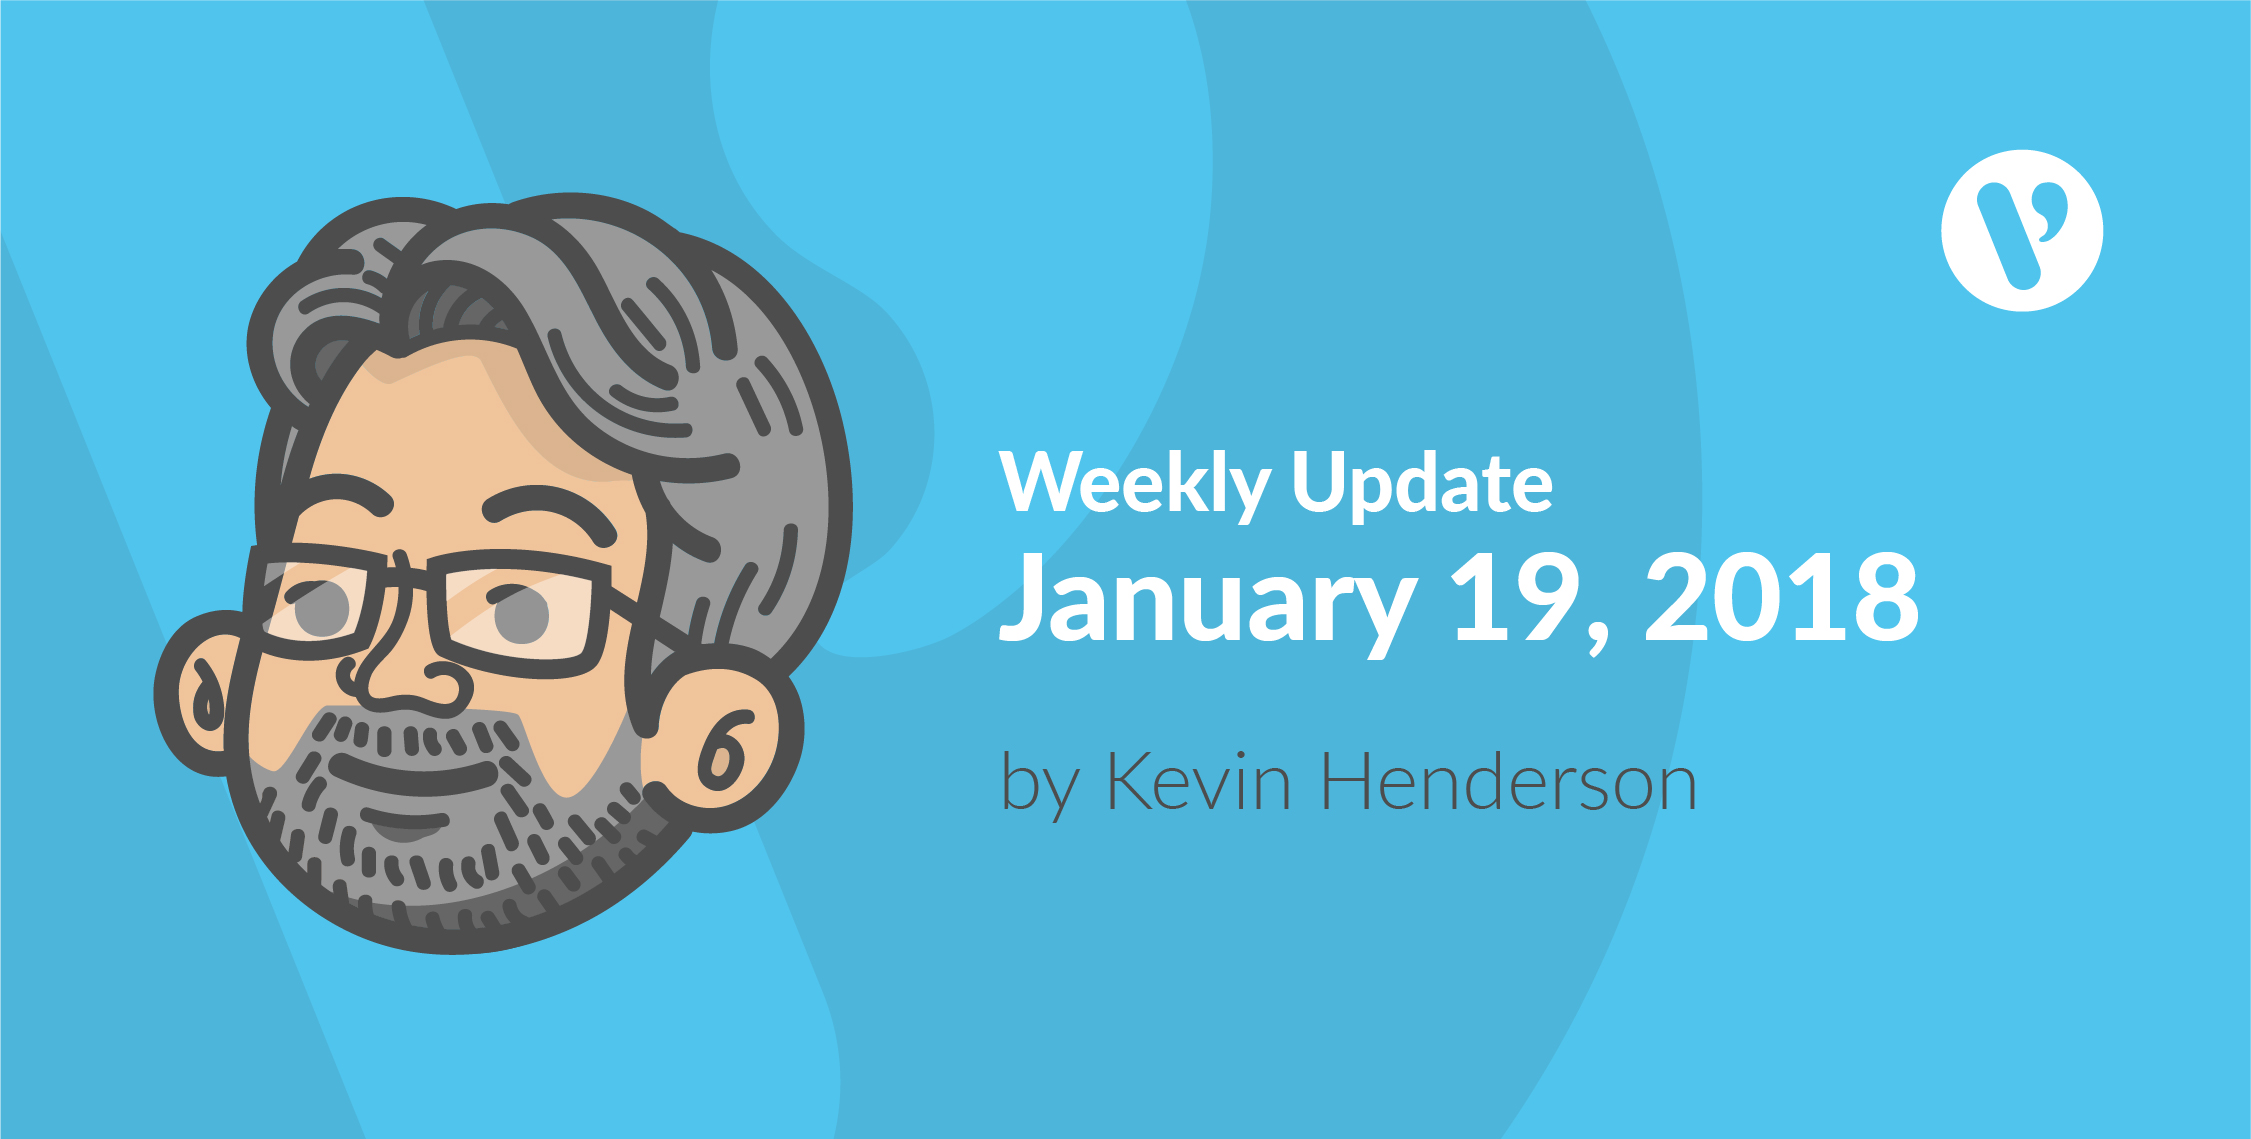 Weekly Update jan 19